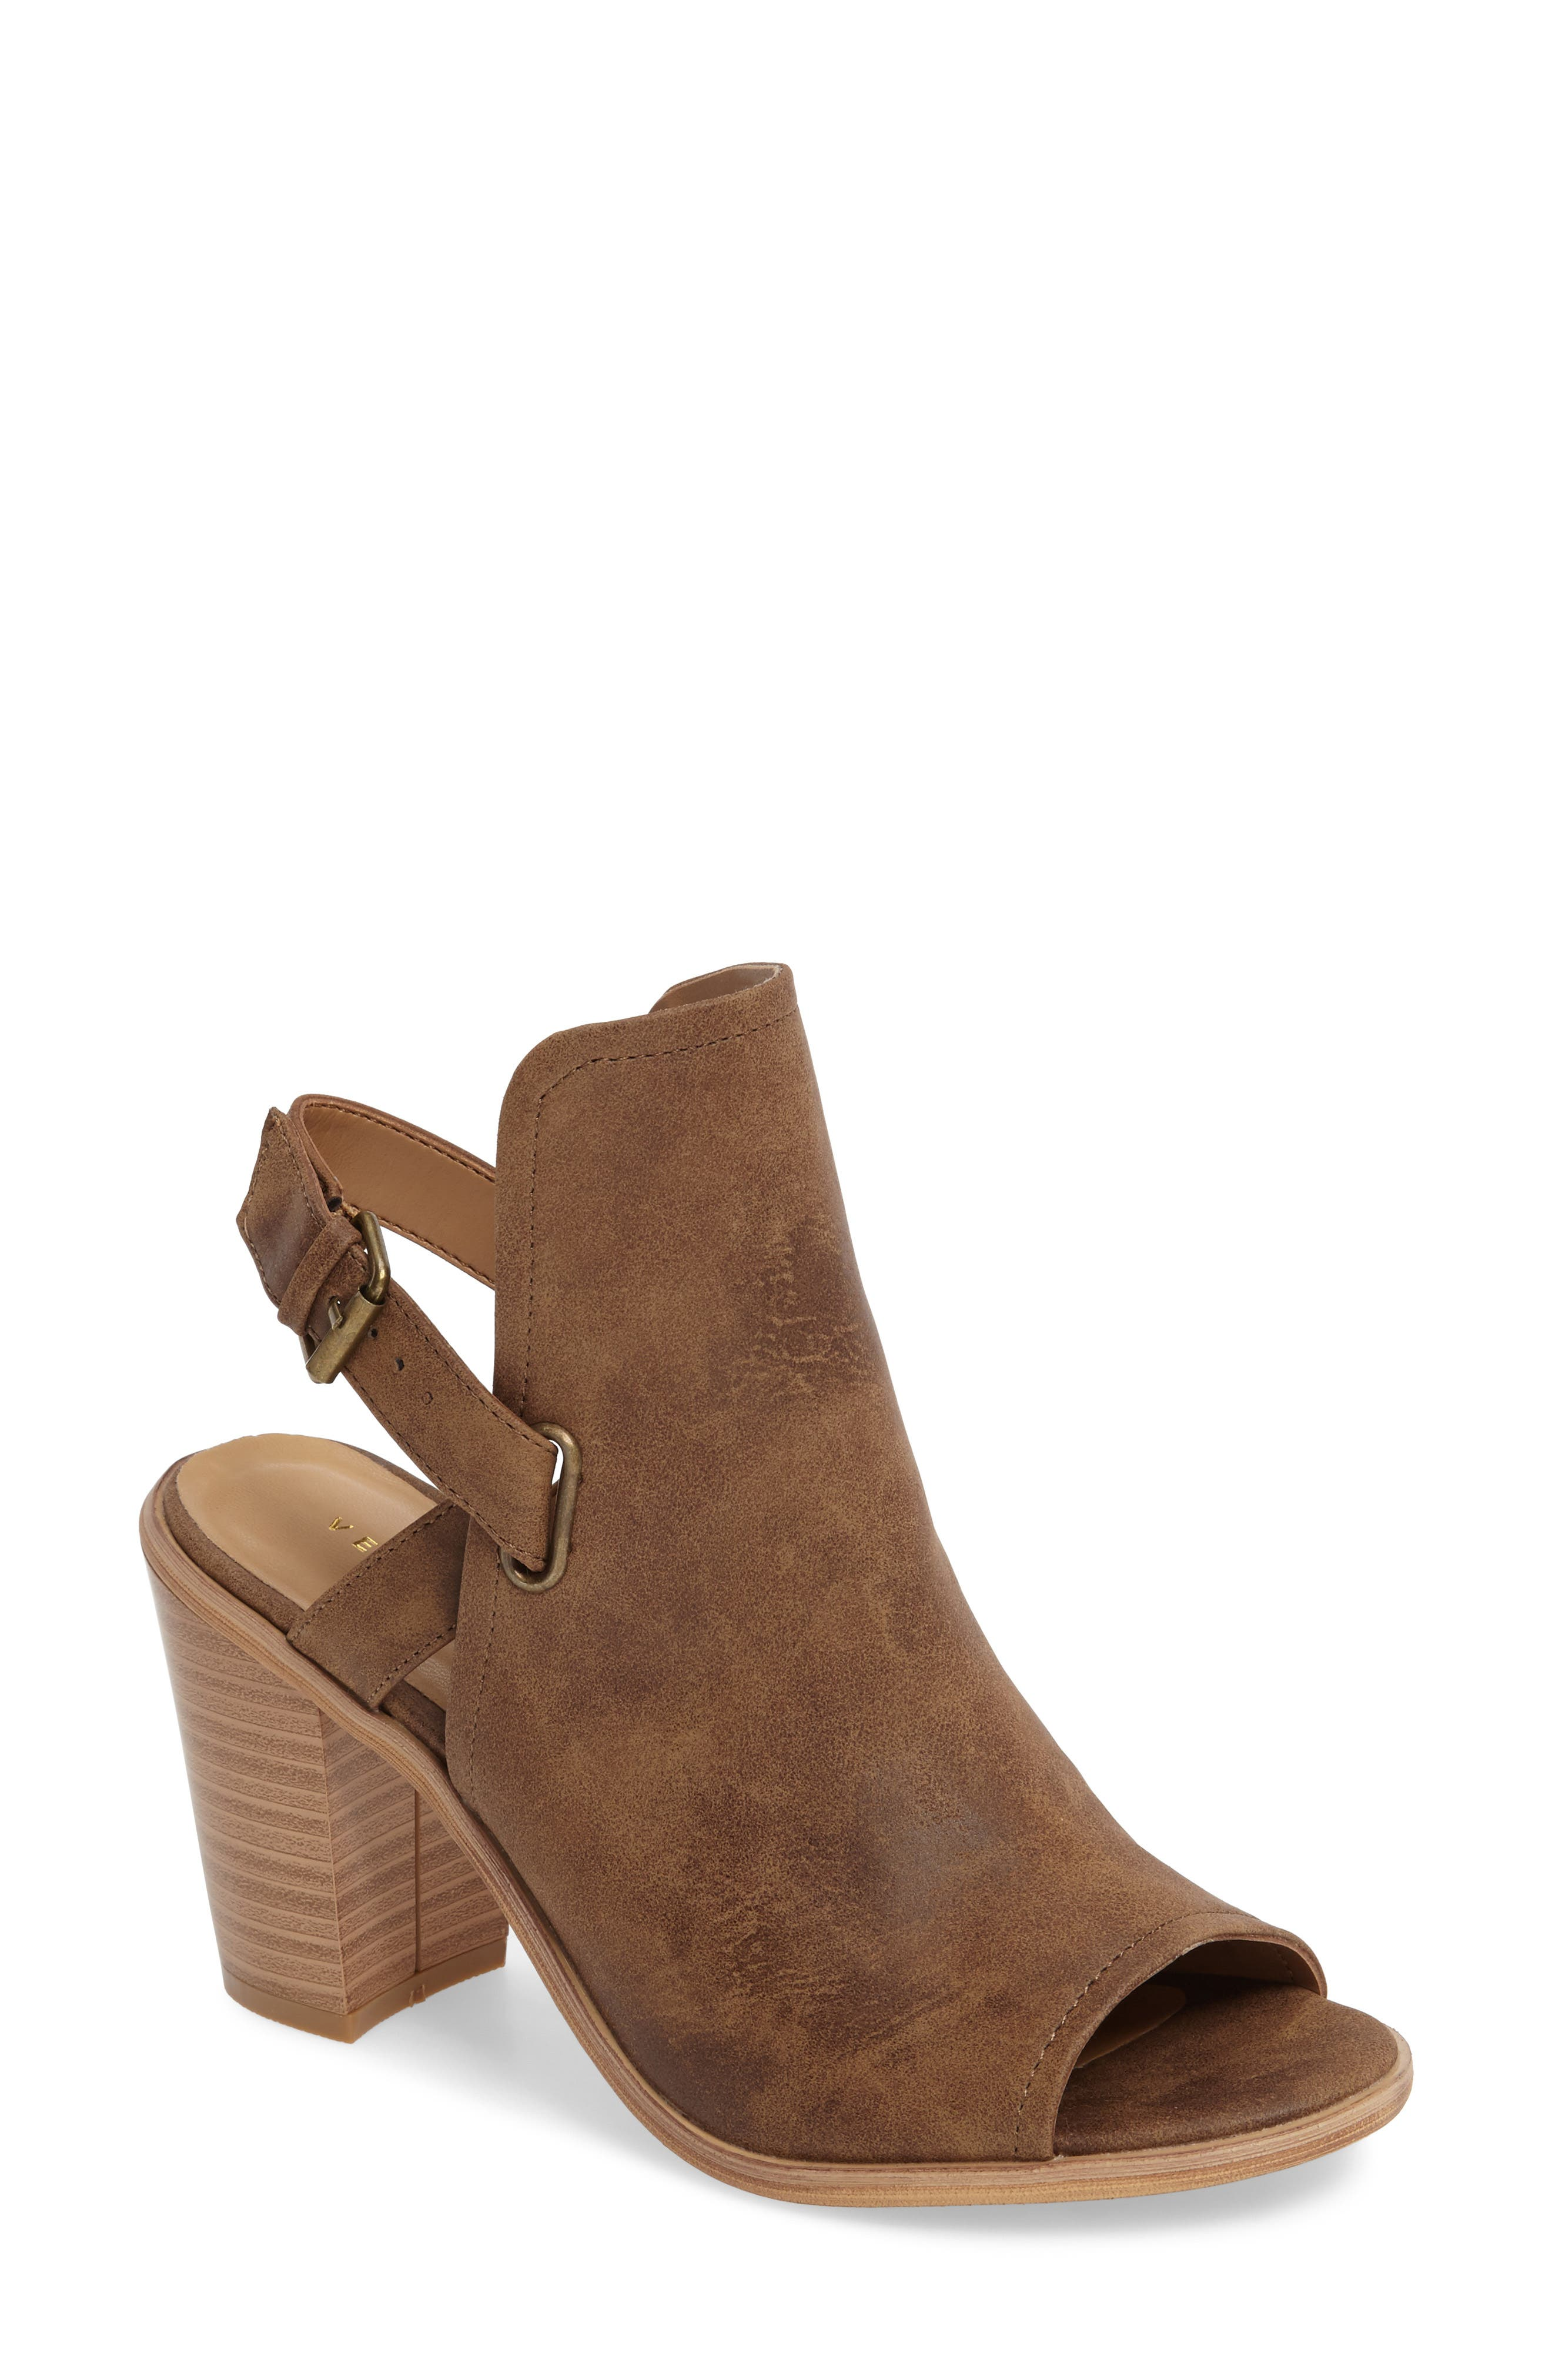 Bolten Sandal,                         Main,                         color, Taupe Faux Leather